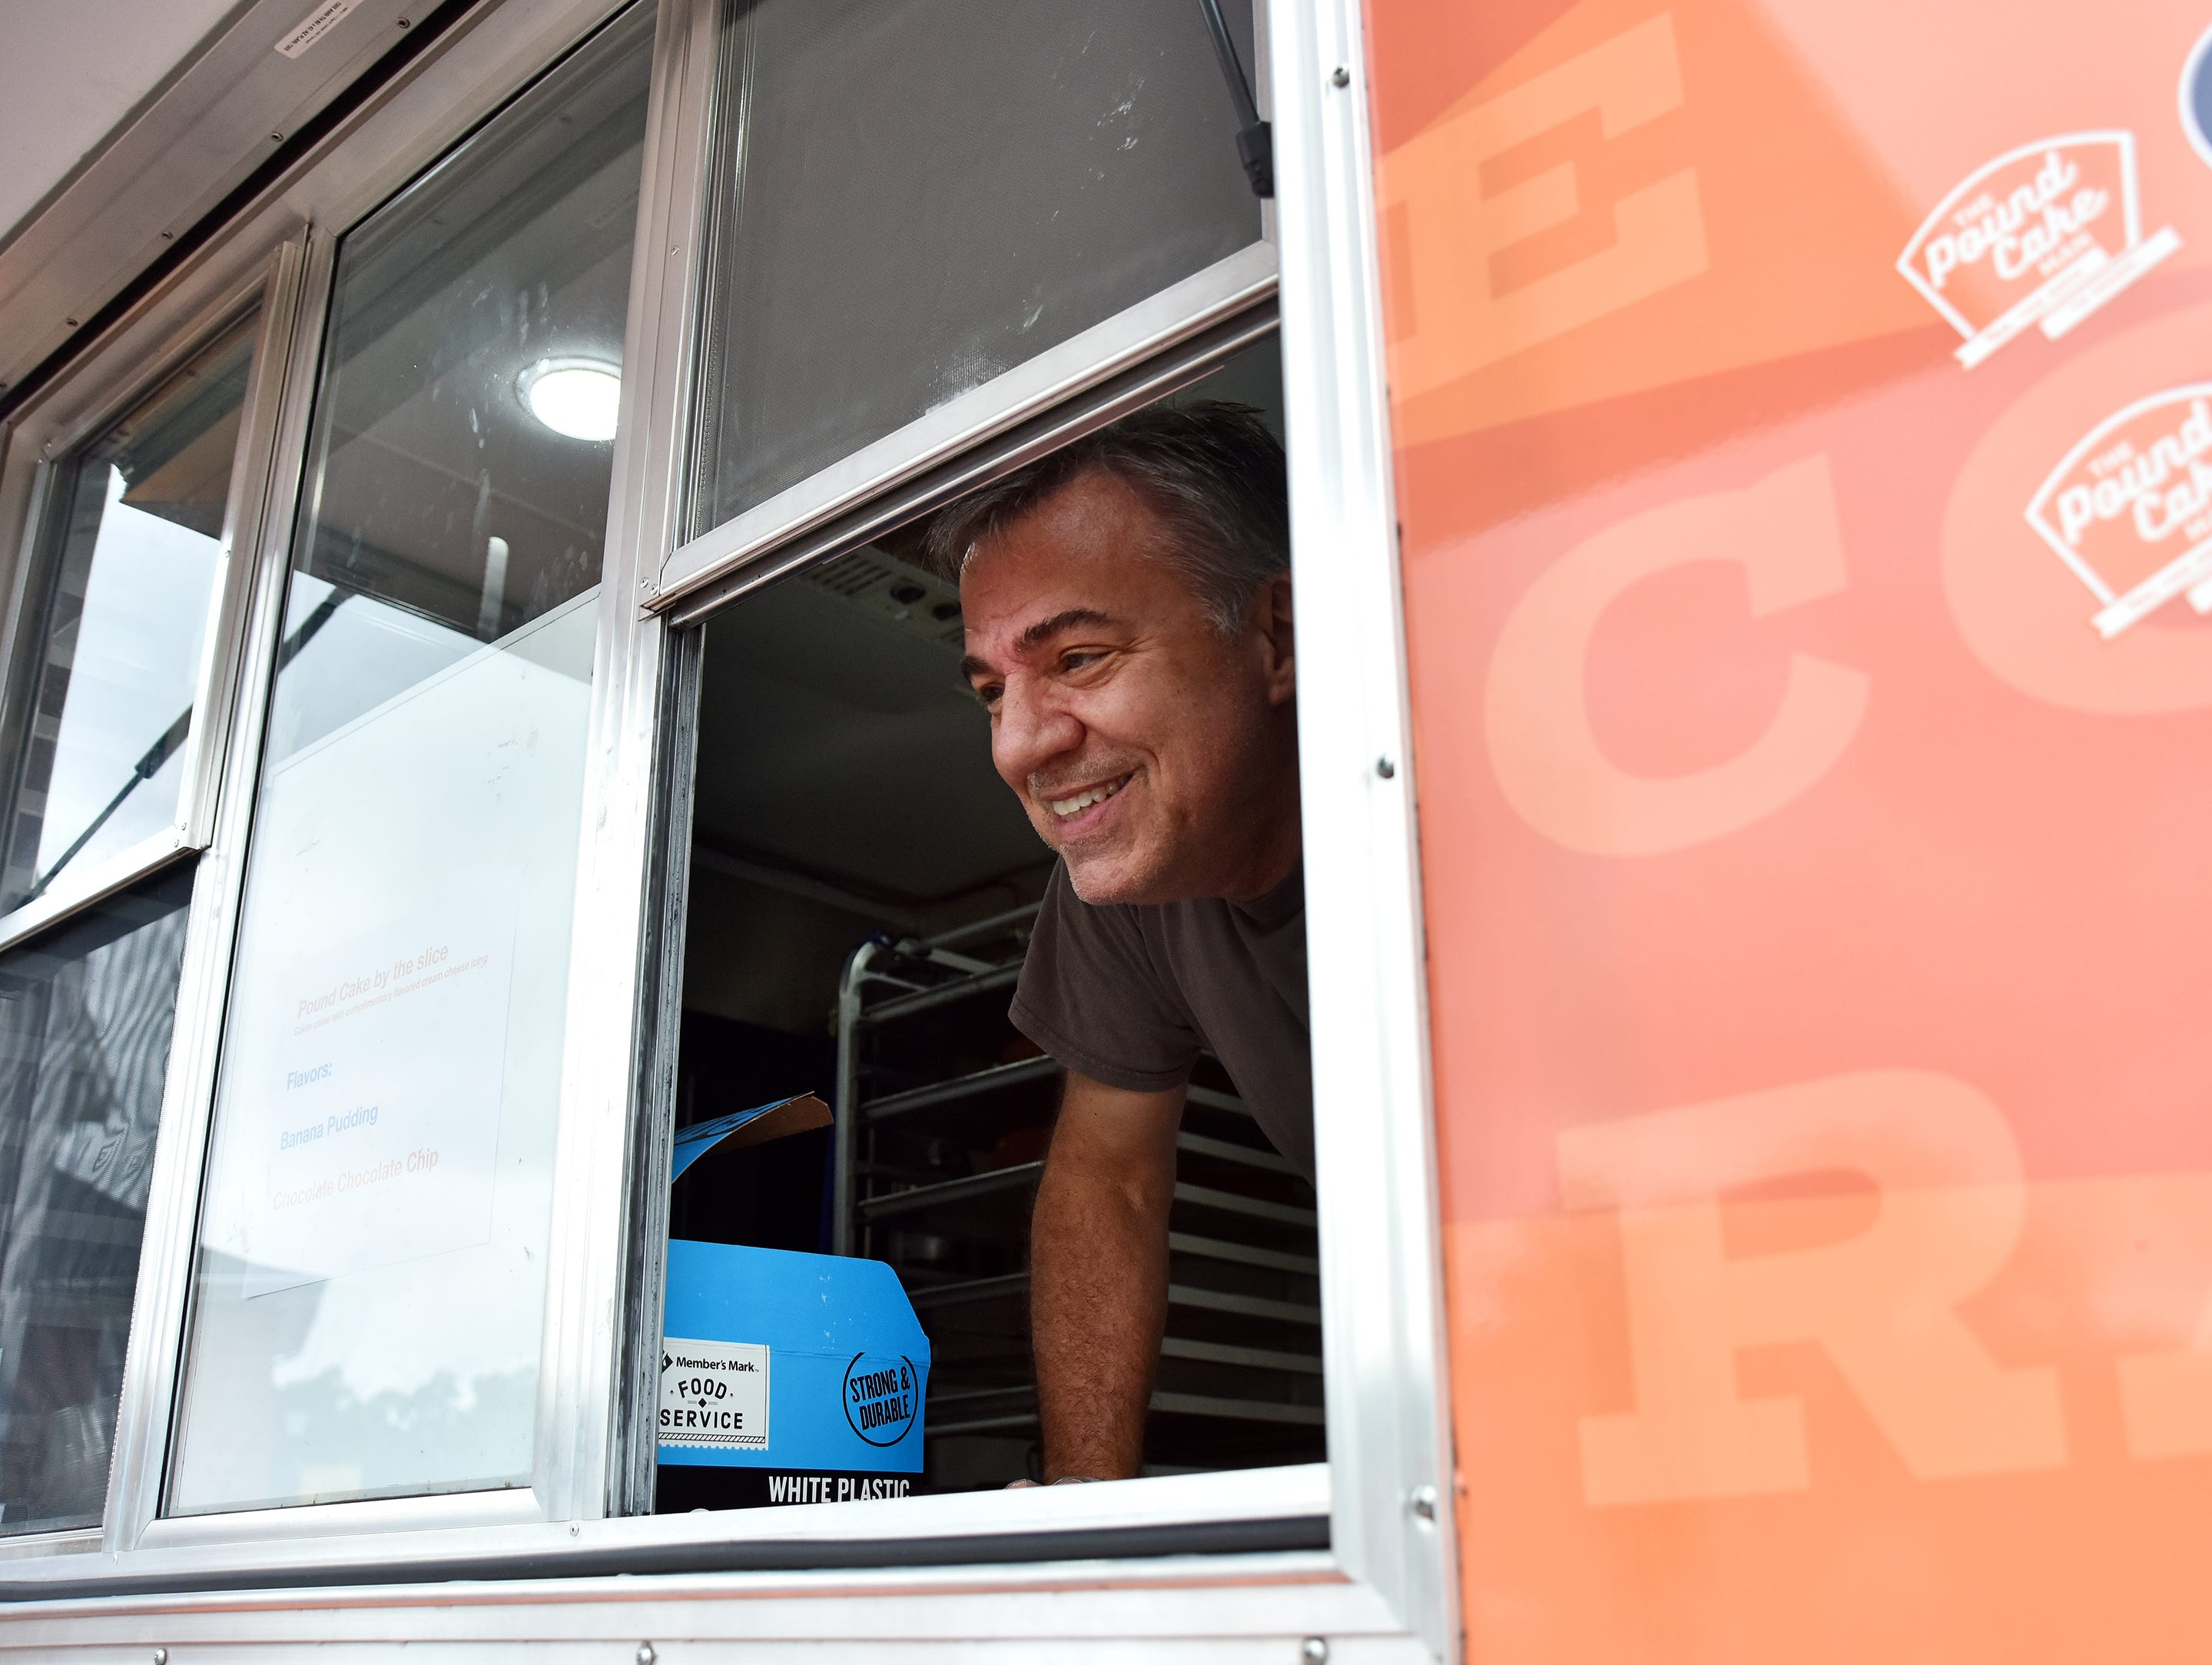 Jeff Bennett takes orders while operating his food truck at Anderson University.